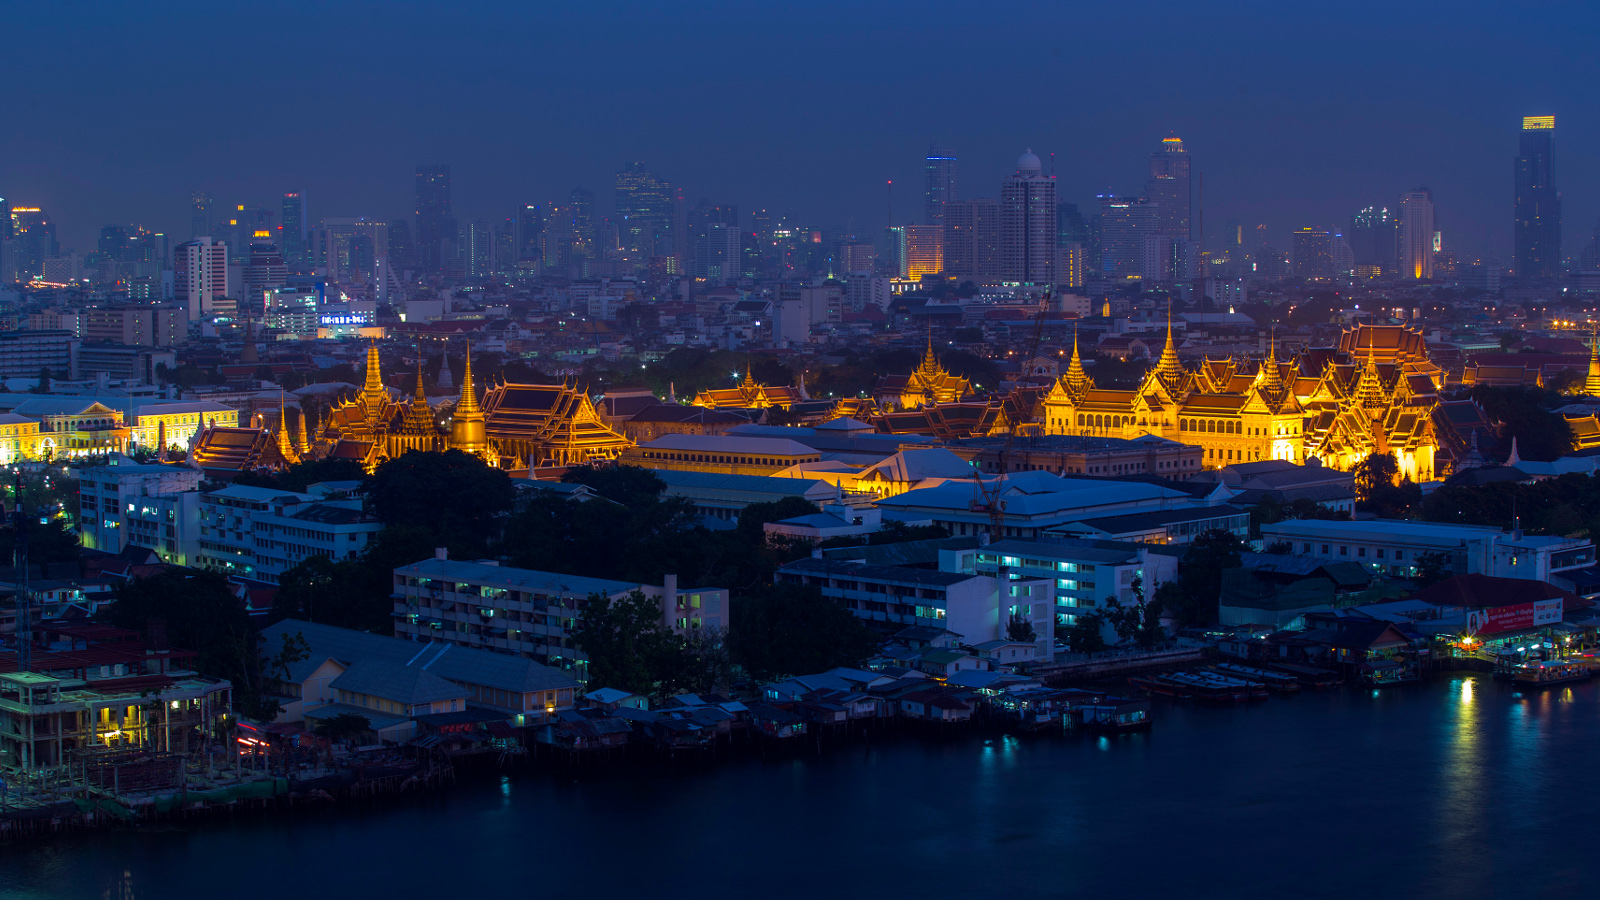 Bangkok, the second most visited city of the world